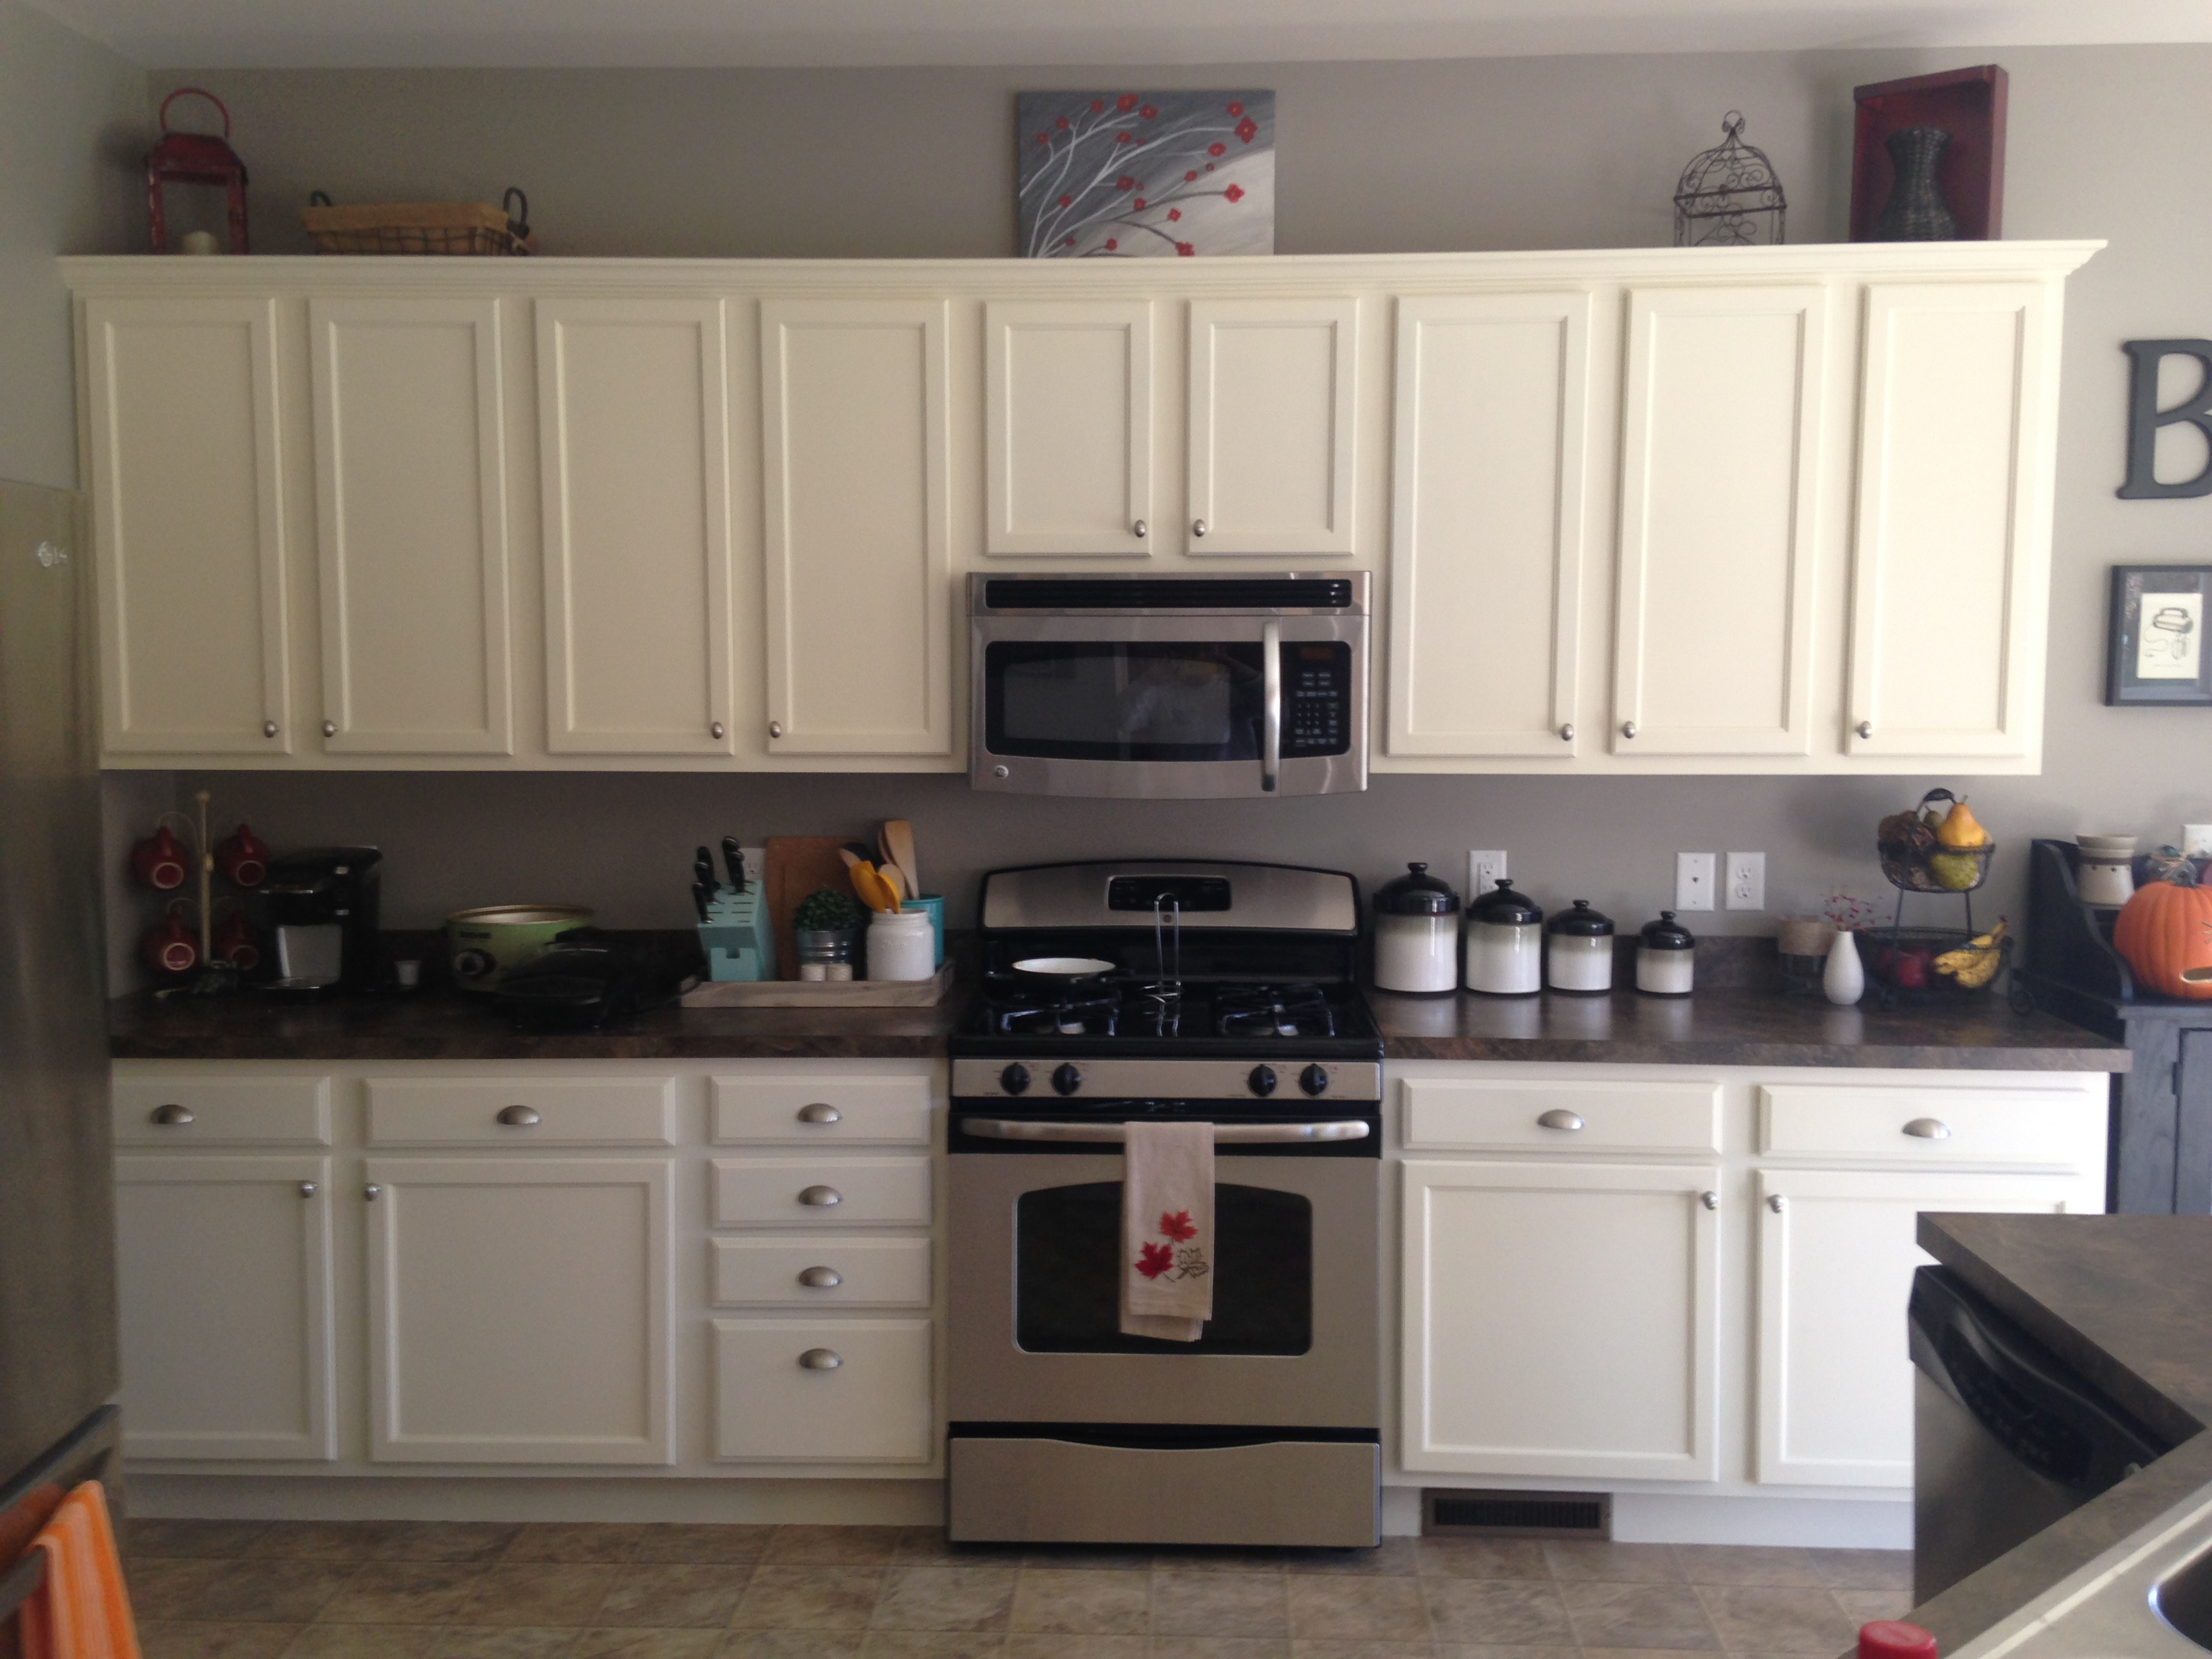 house painting ideas for the kitchen how to paint kitchen cabinets 12 common questions. Black Bedroom Furniture Sets. Home Design Ideas